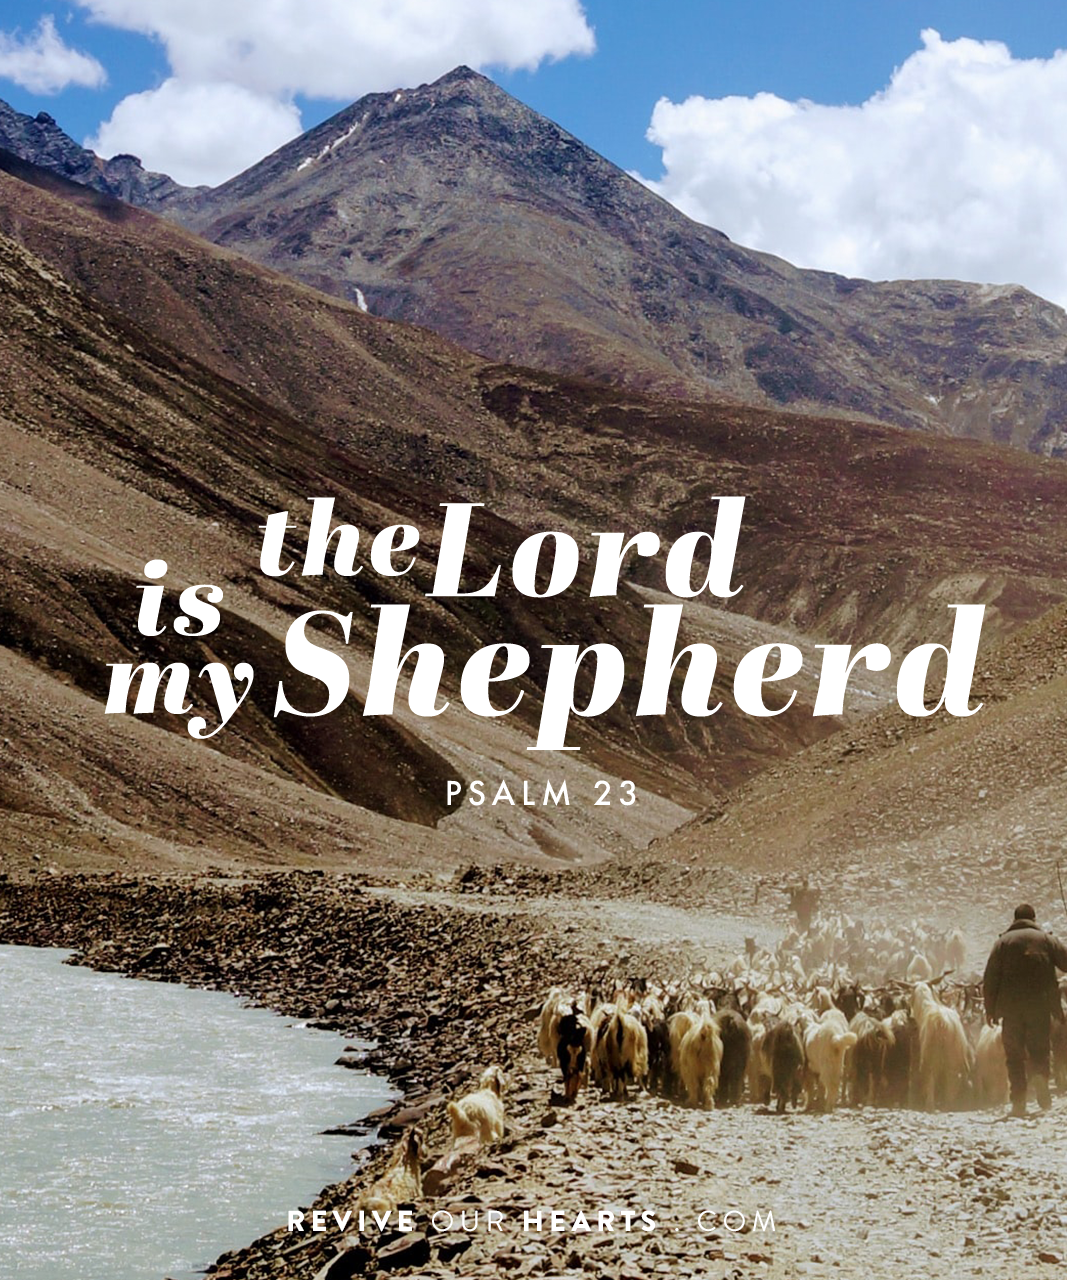 The Lord Is My Shepherd Psalm 23 Revive Our Hearts Season